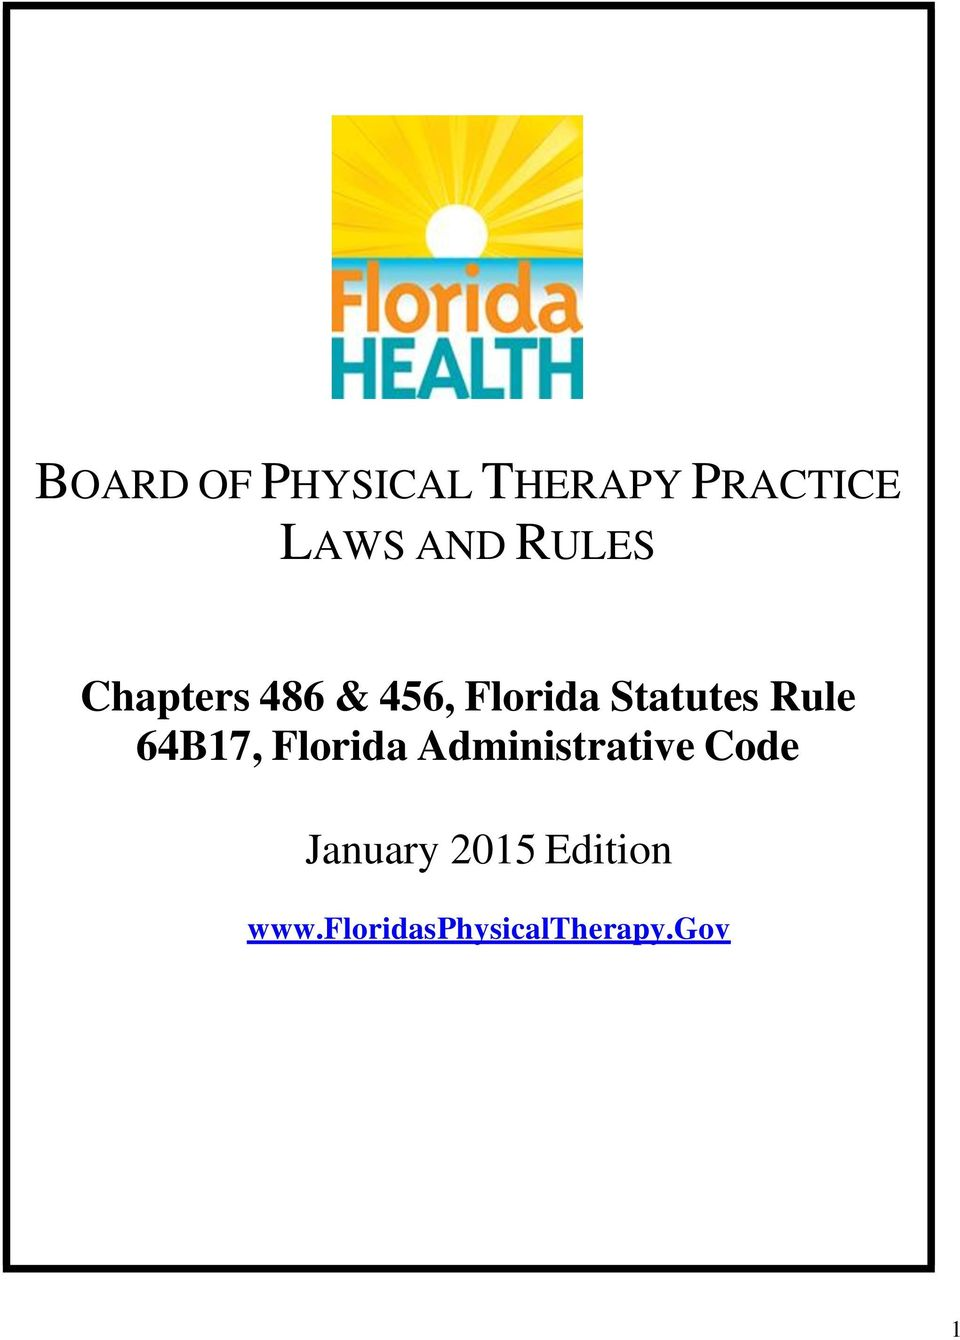 Rule 64B17, Florida Administrative Code